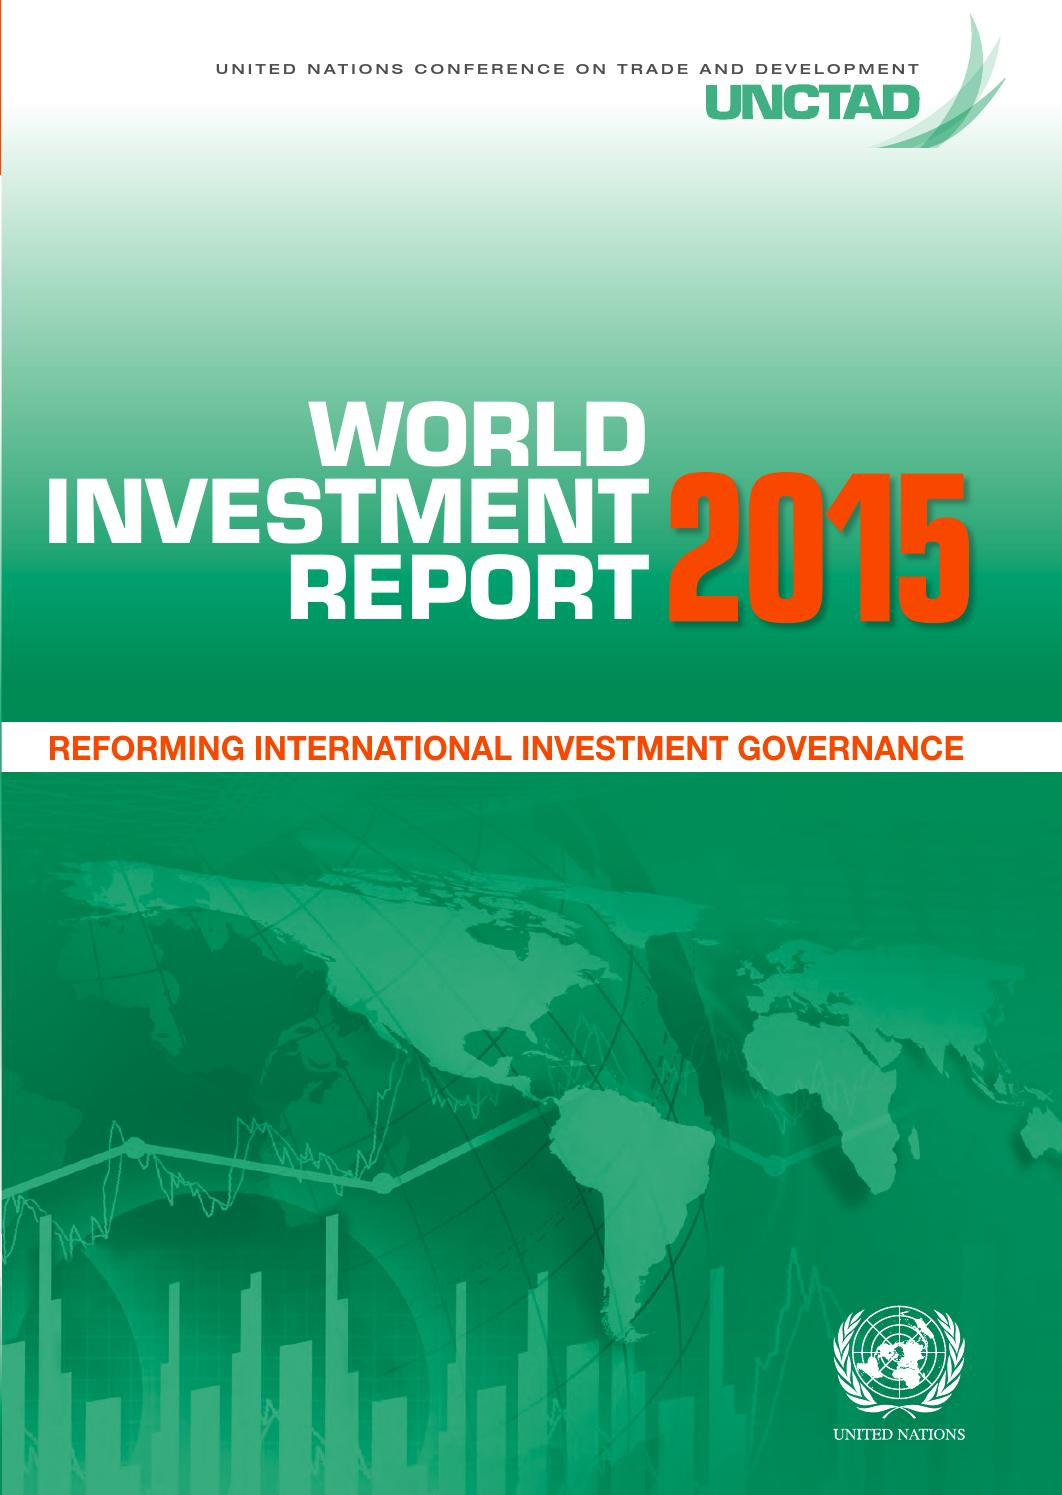 Unctad sovereign debt restructuring and international investment agreements fma phoenix forex